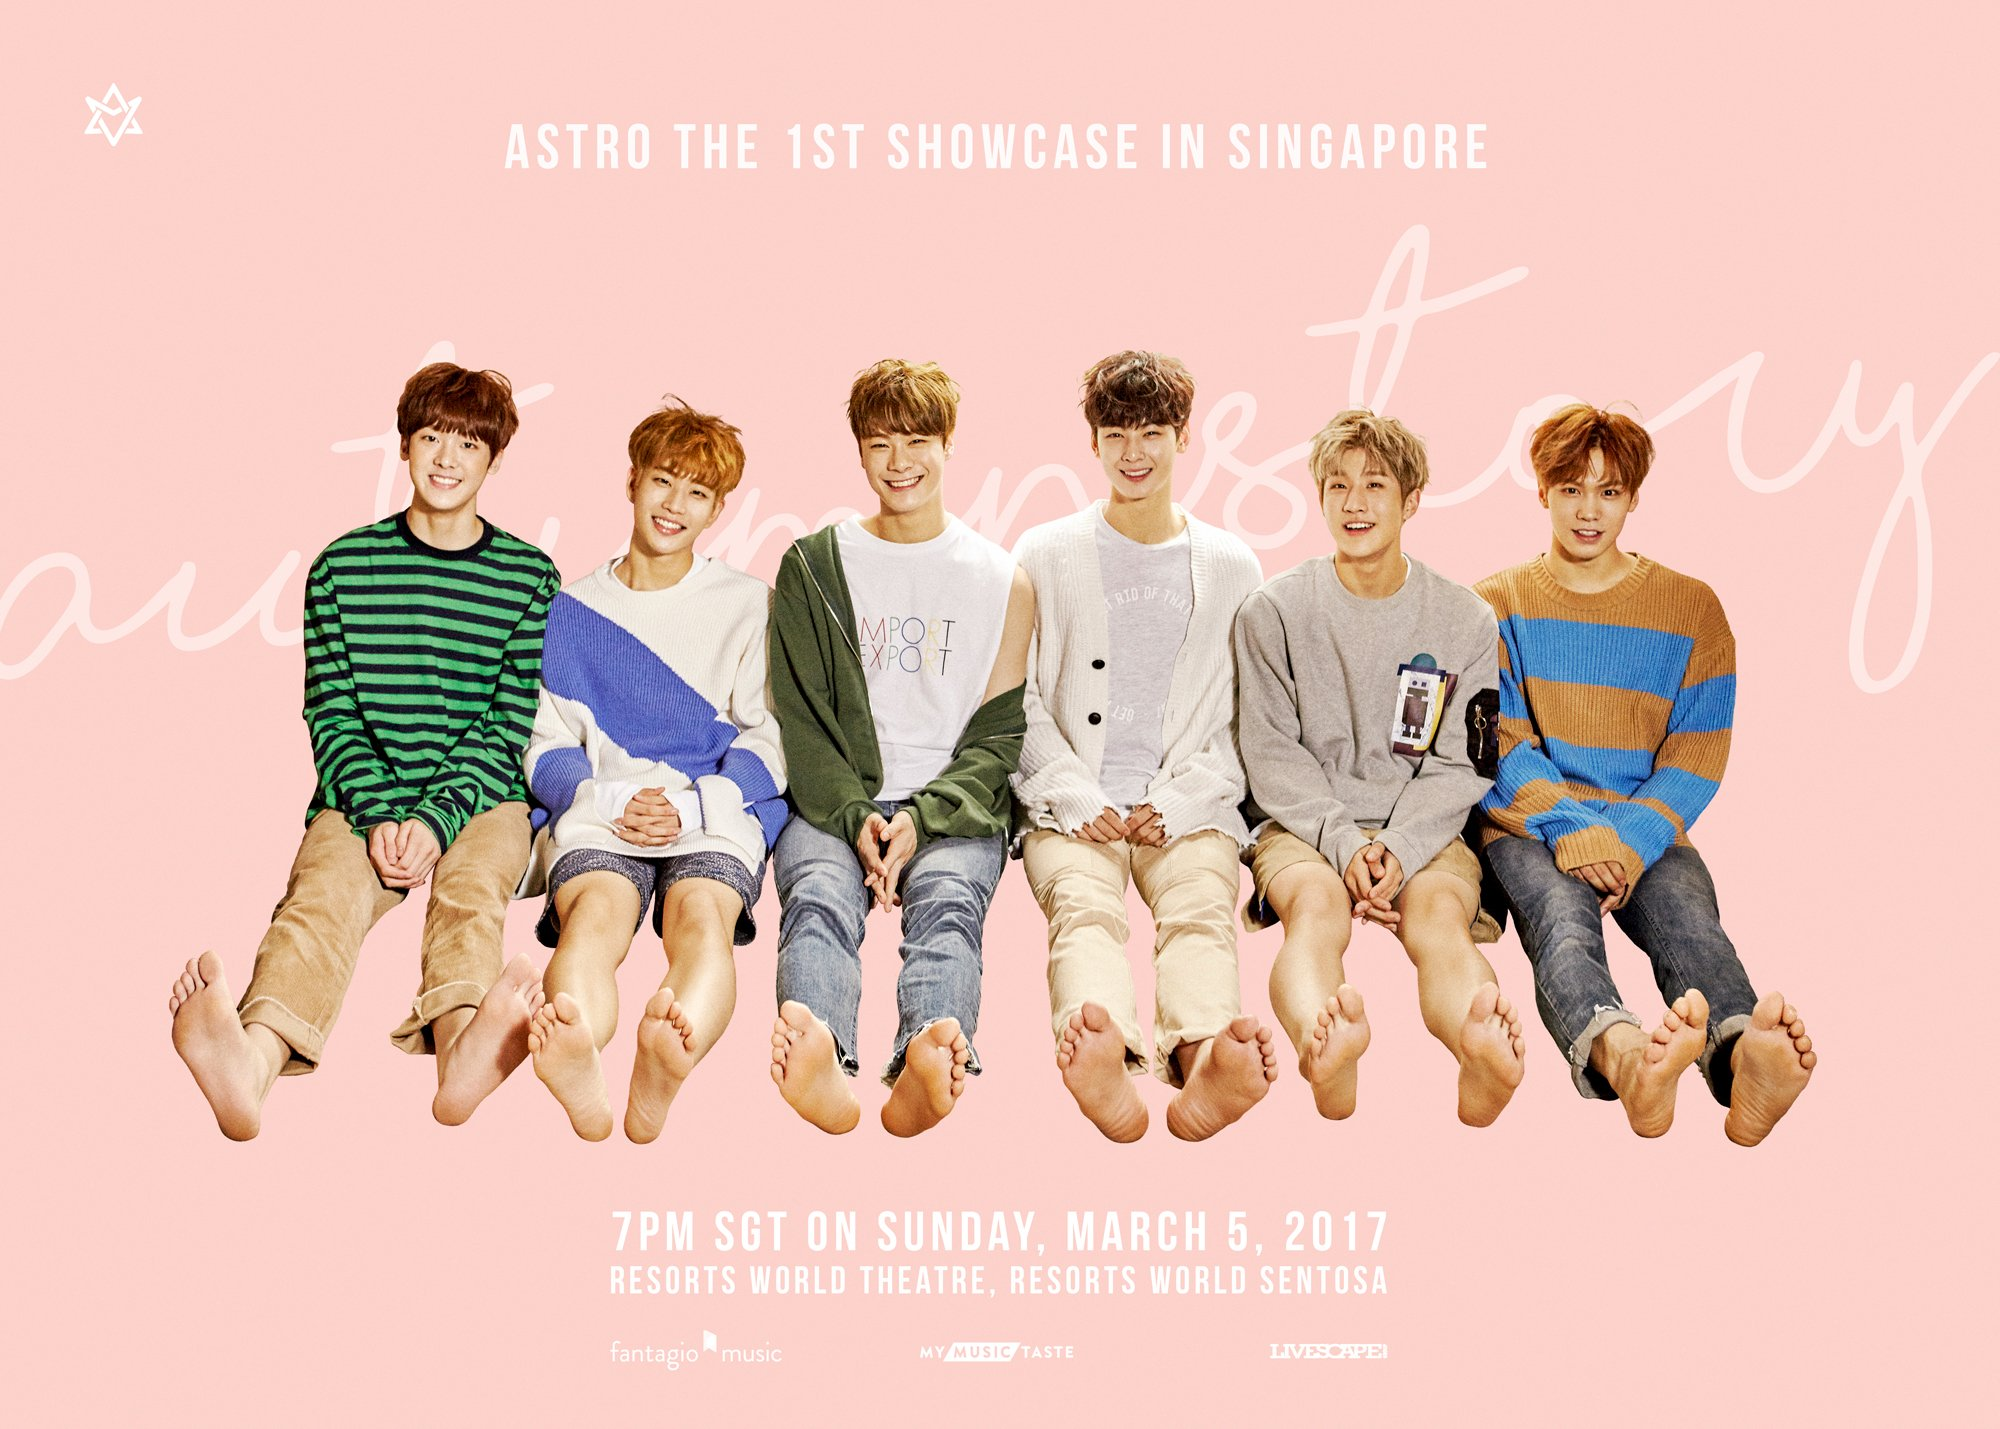 astro-the-1st-showcase-in-singapore-official-poster